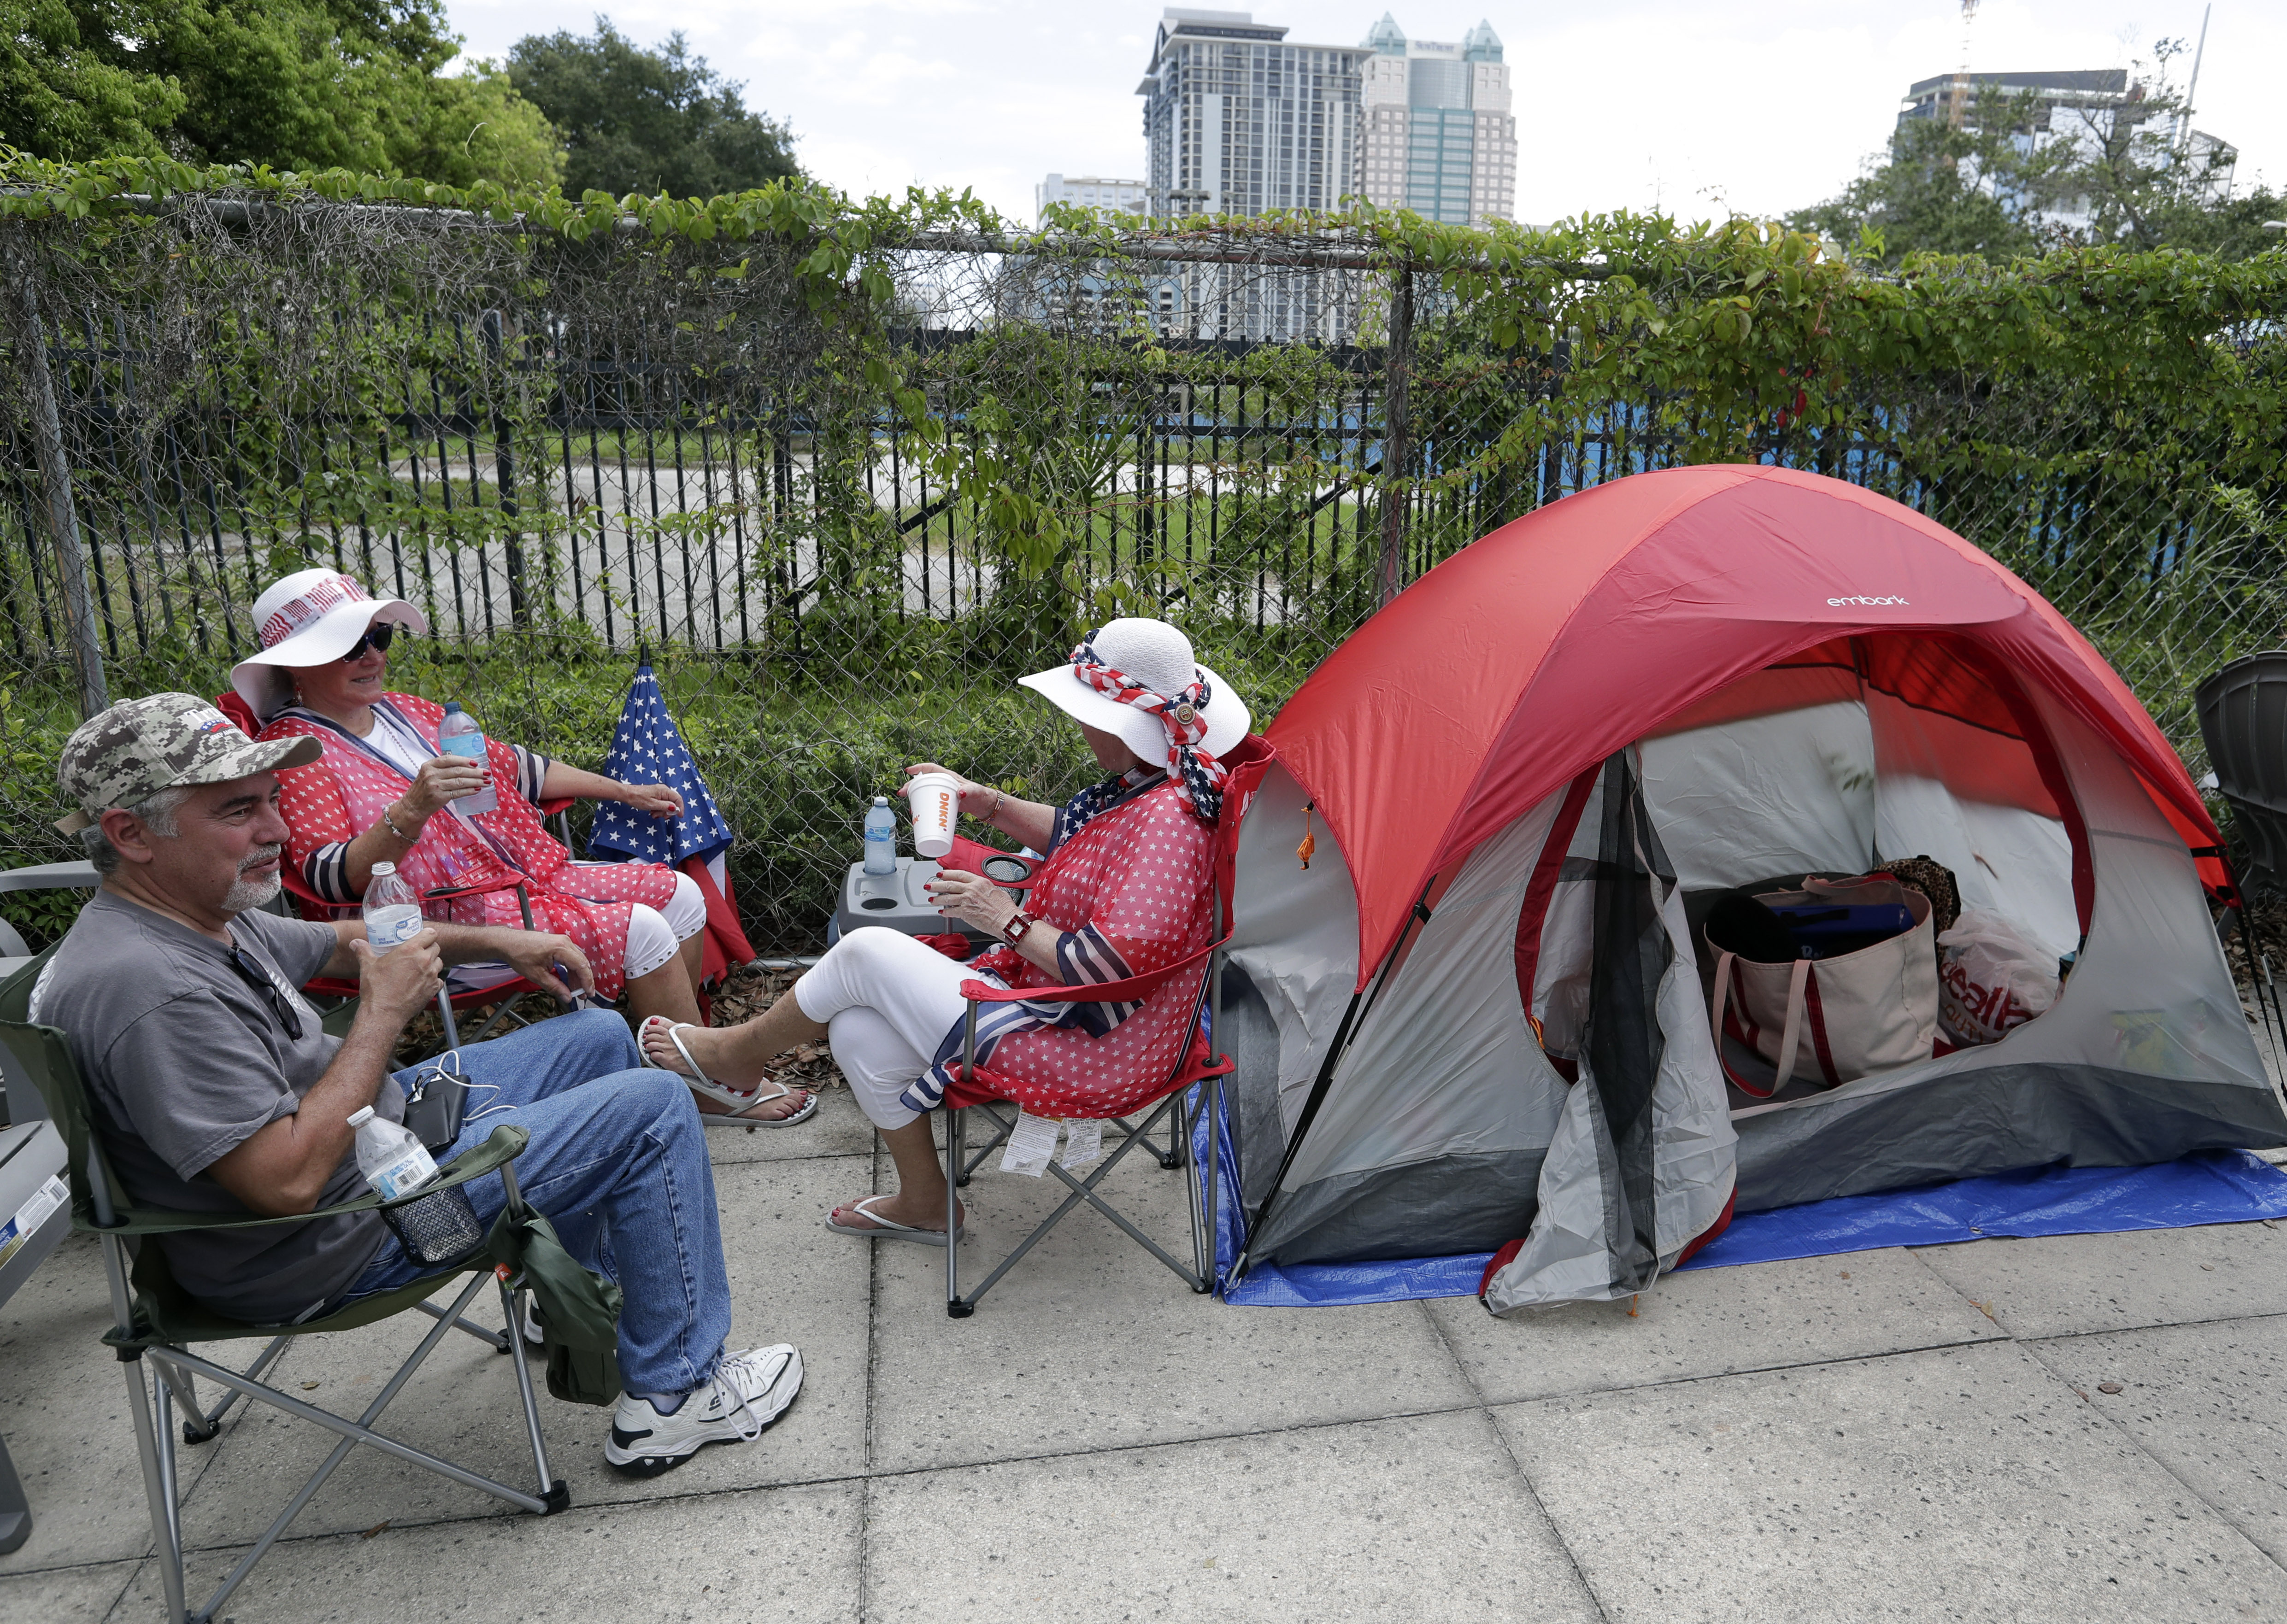 Supporters of President Donald Trump, from left, James DeWilde, Laureen Vartanian and Maureen Bailey wait in line with others on Monday, June 17, 2019, in Orlando, Fla. They are among the first people in line to attend a rally on Tuesday night. (AP…